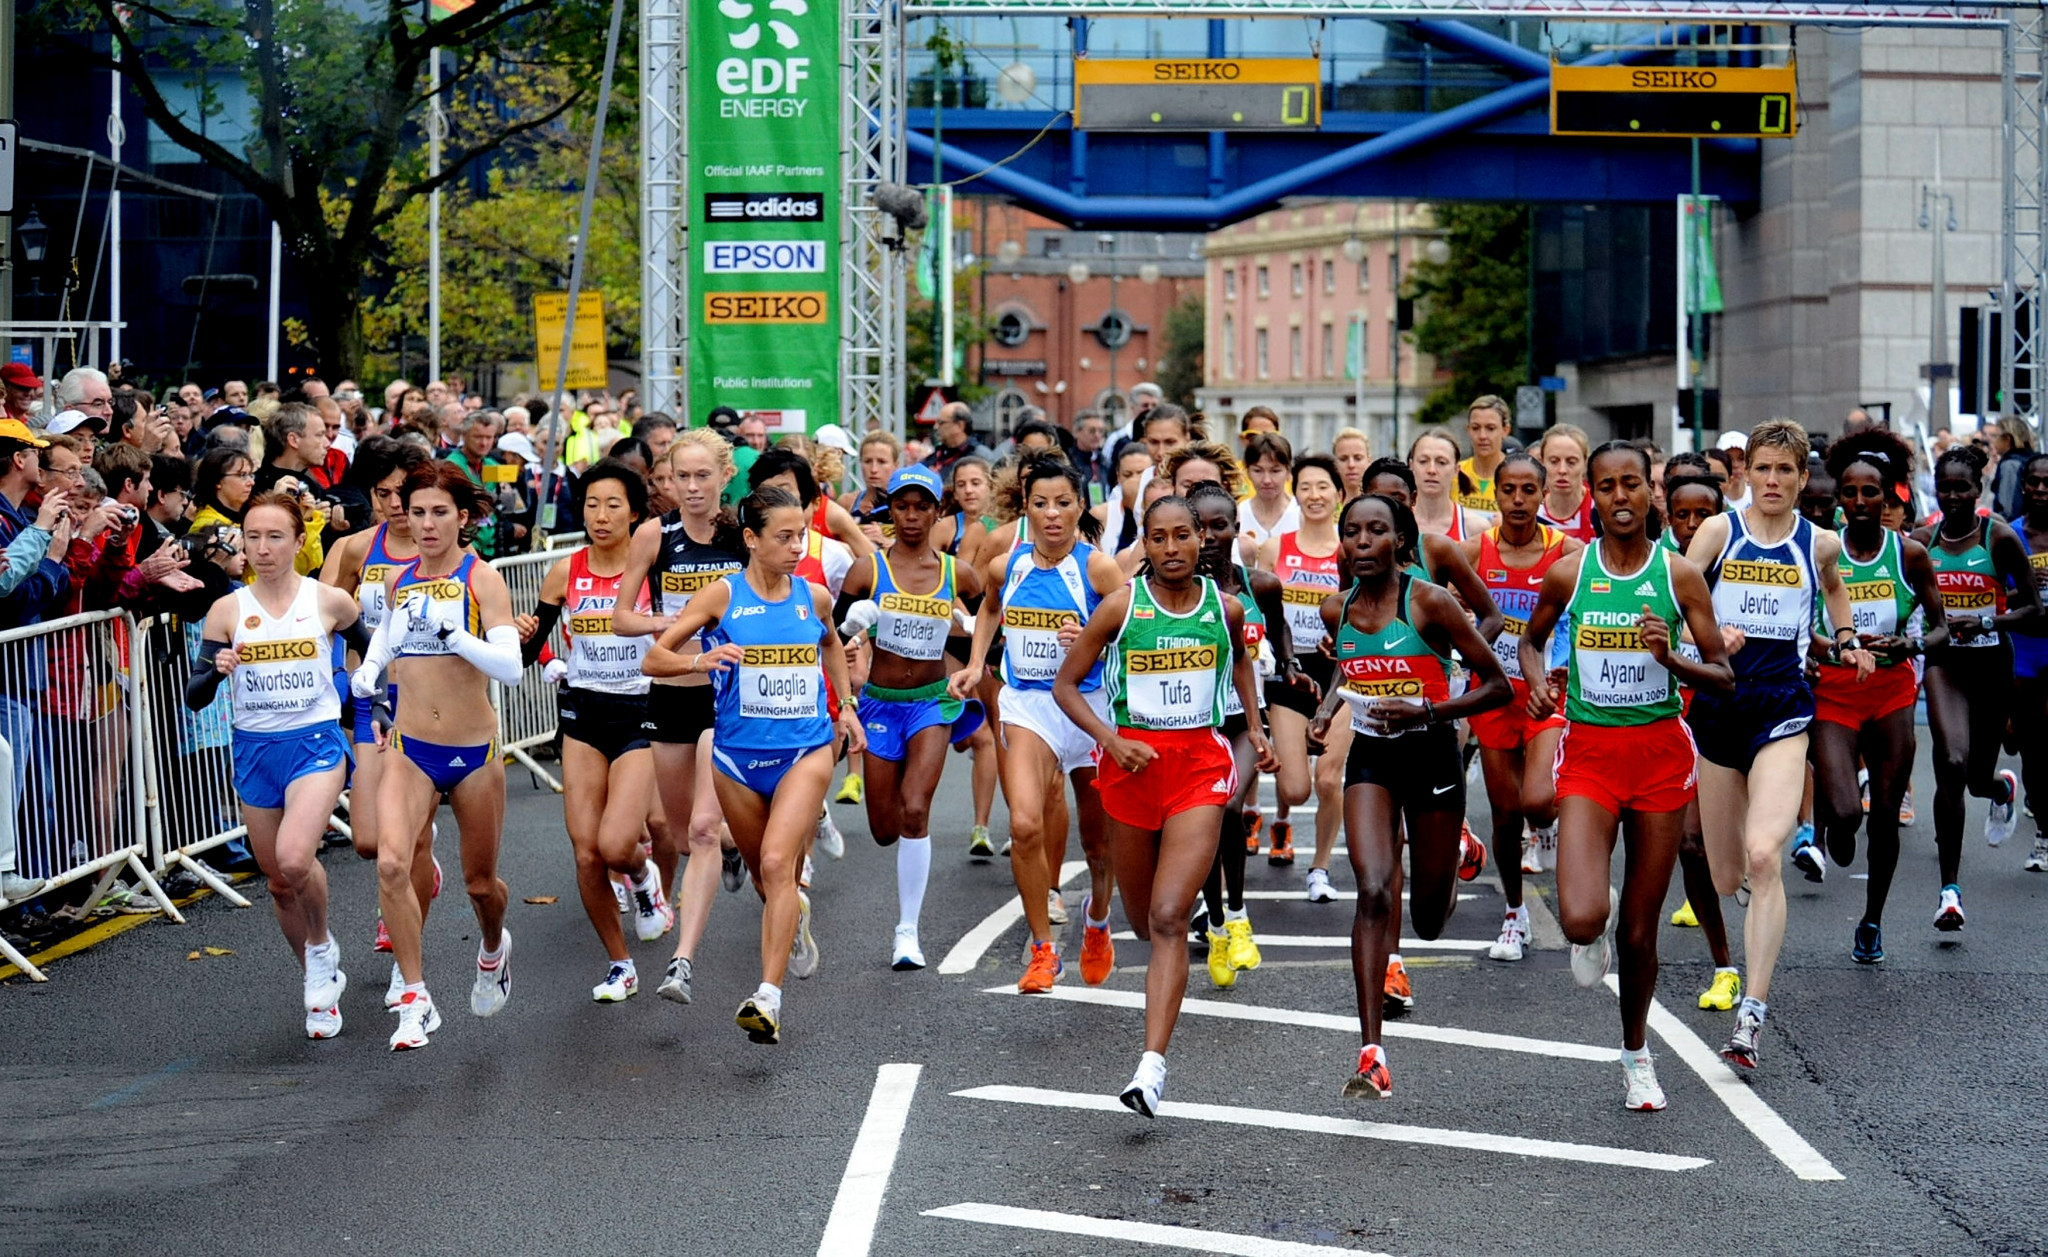 Birmingham hosted the World Half Marathon Championships, which is due to be absorbed into the new event, in 2009 ©Getty Images